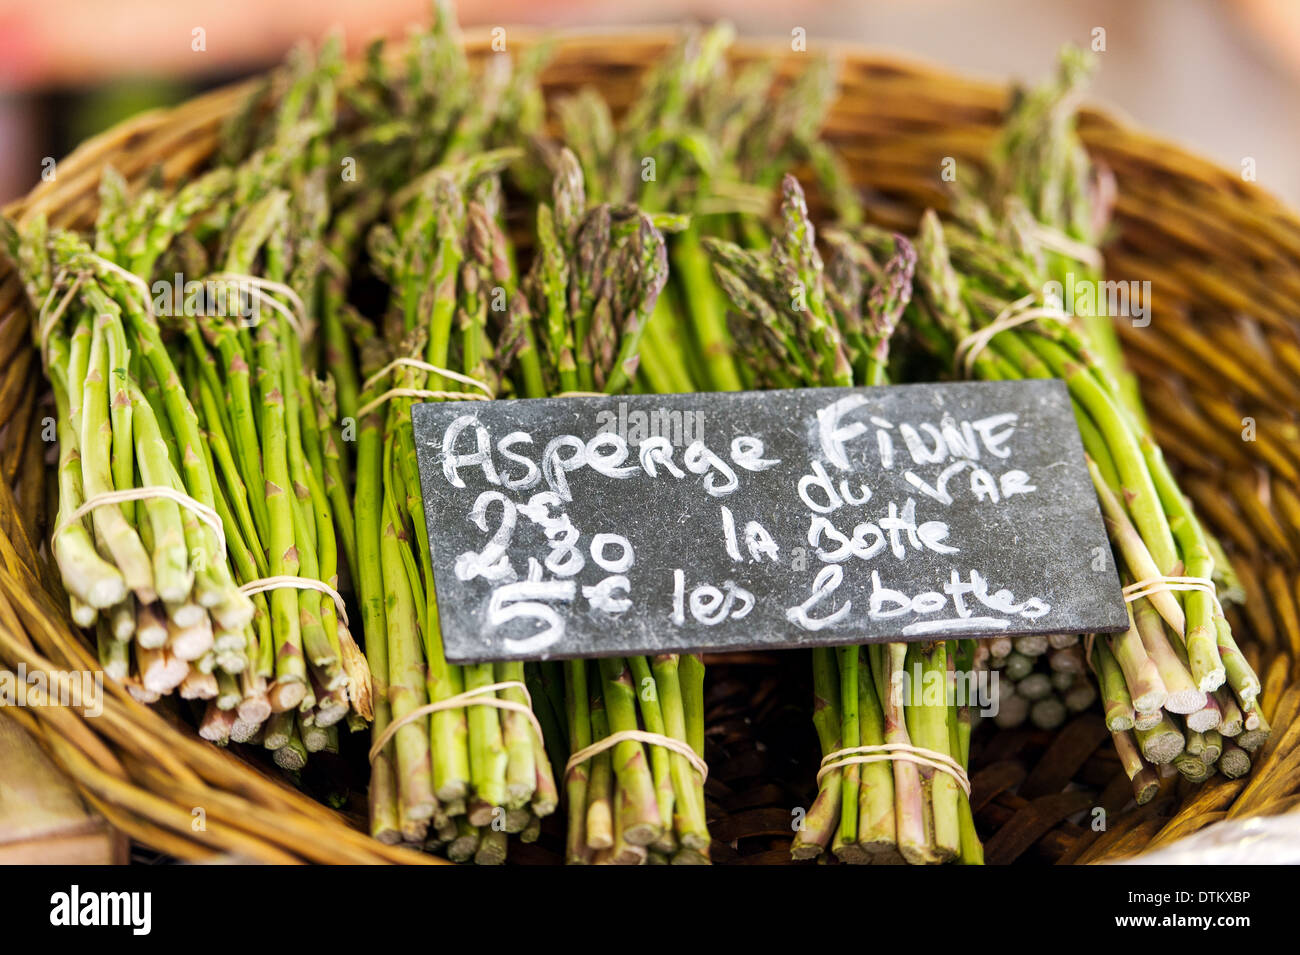 Europe, France, Alpes-Maritimes, Antibes. Provencal market. Asparagus. - Stock Image